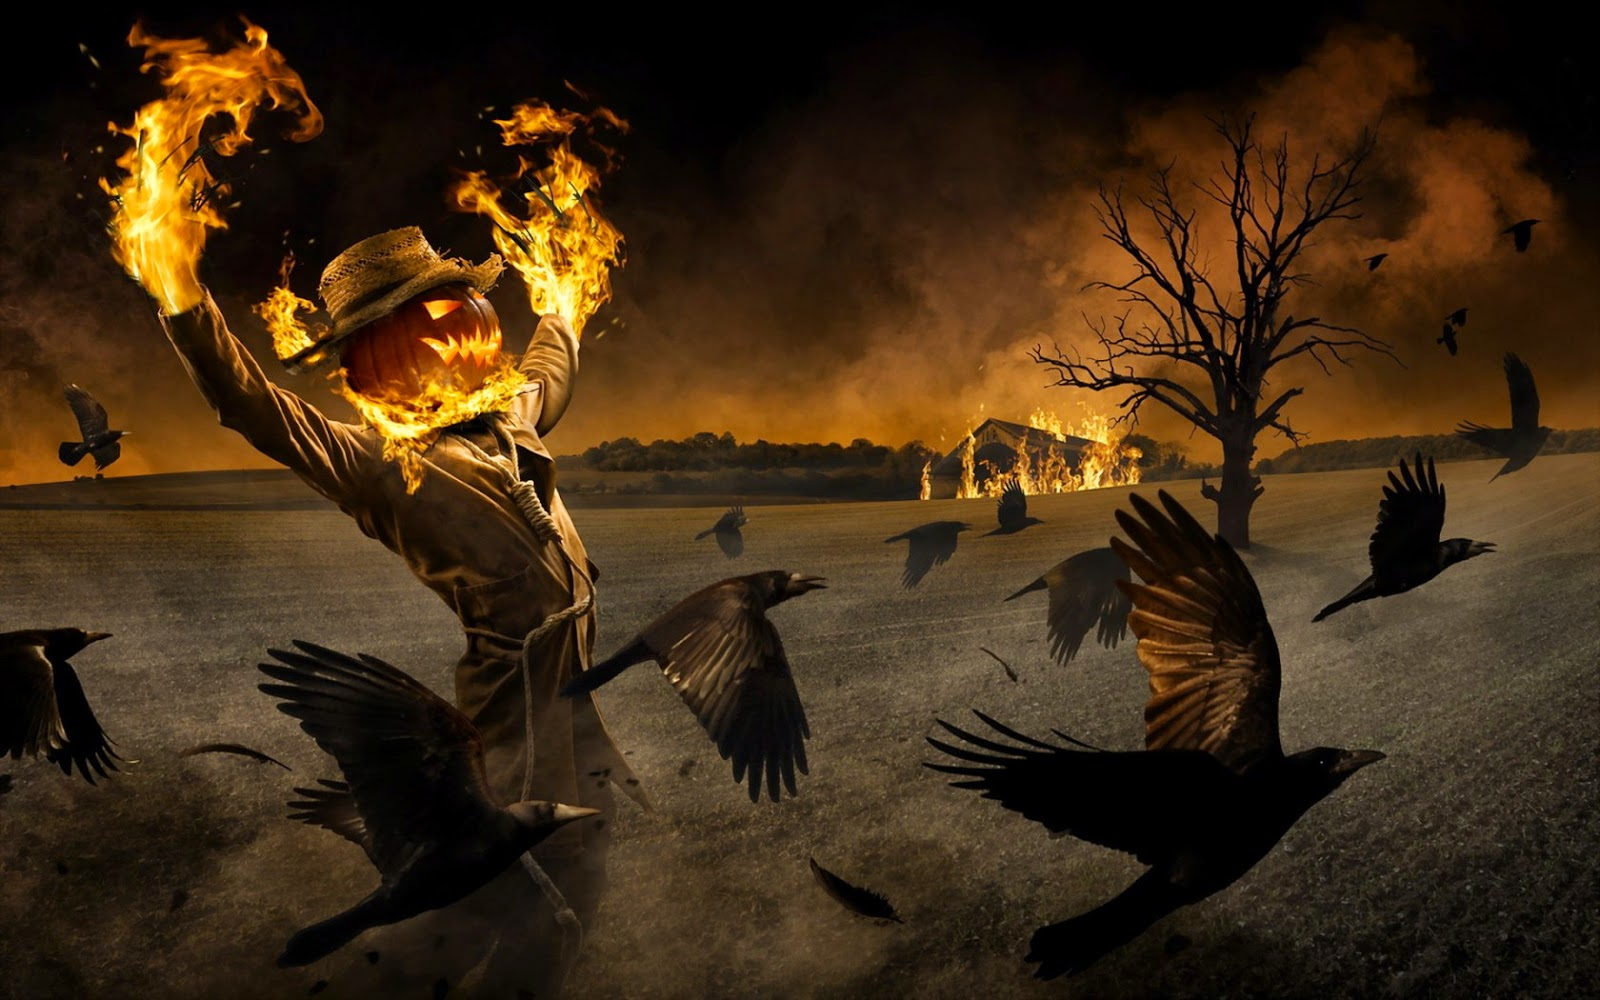 1680x1050-halloween-scarecrow-set-fire-to-home-with-crow-HD-image.jpg